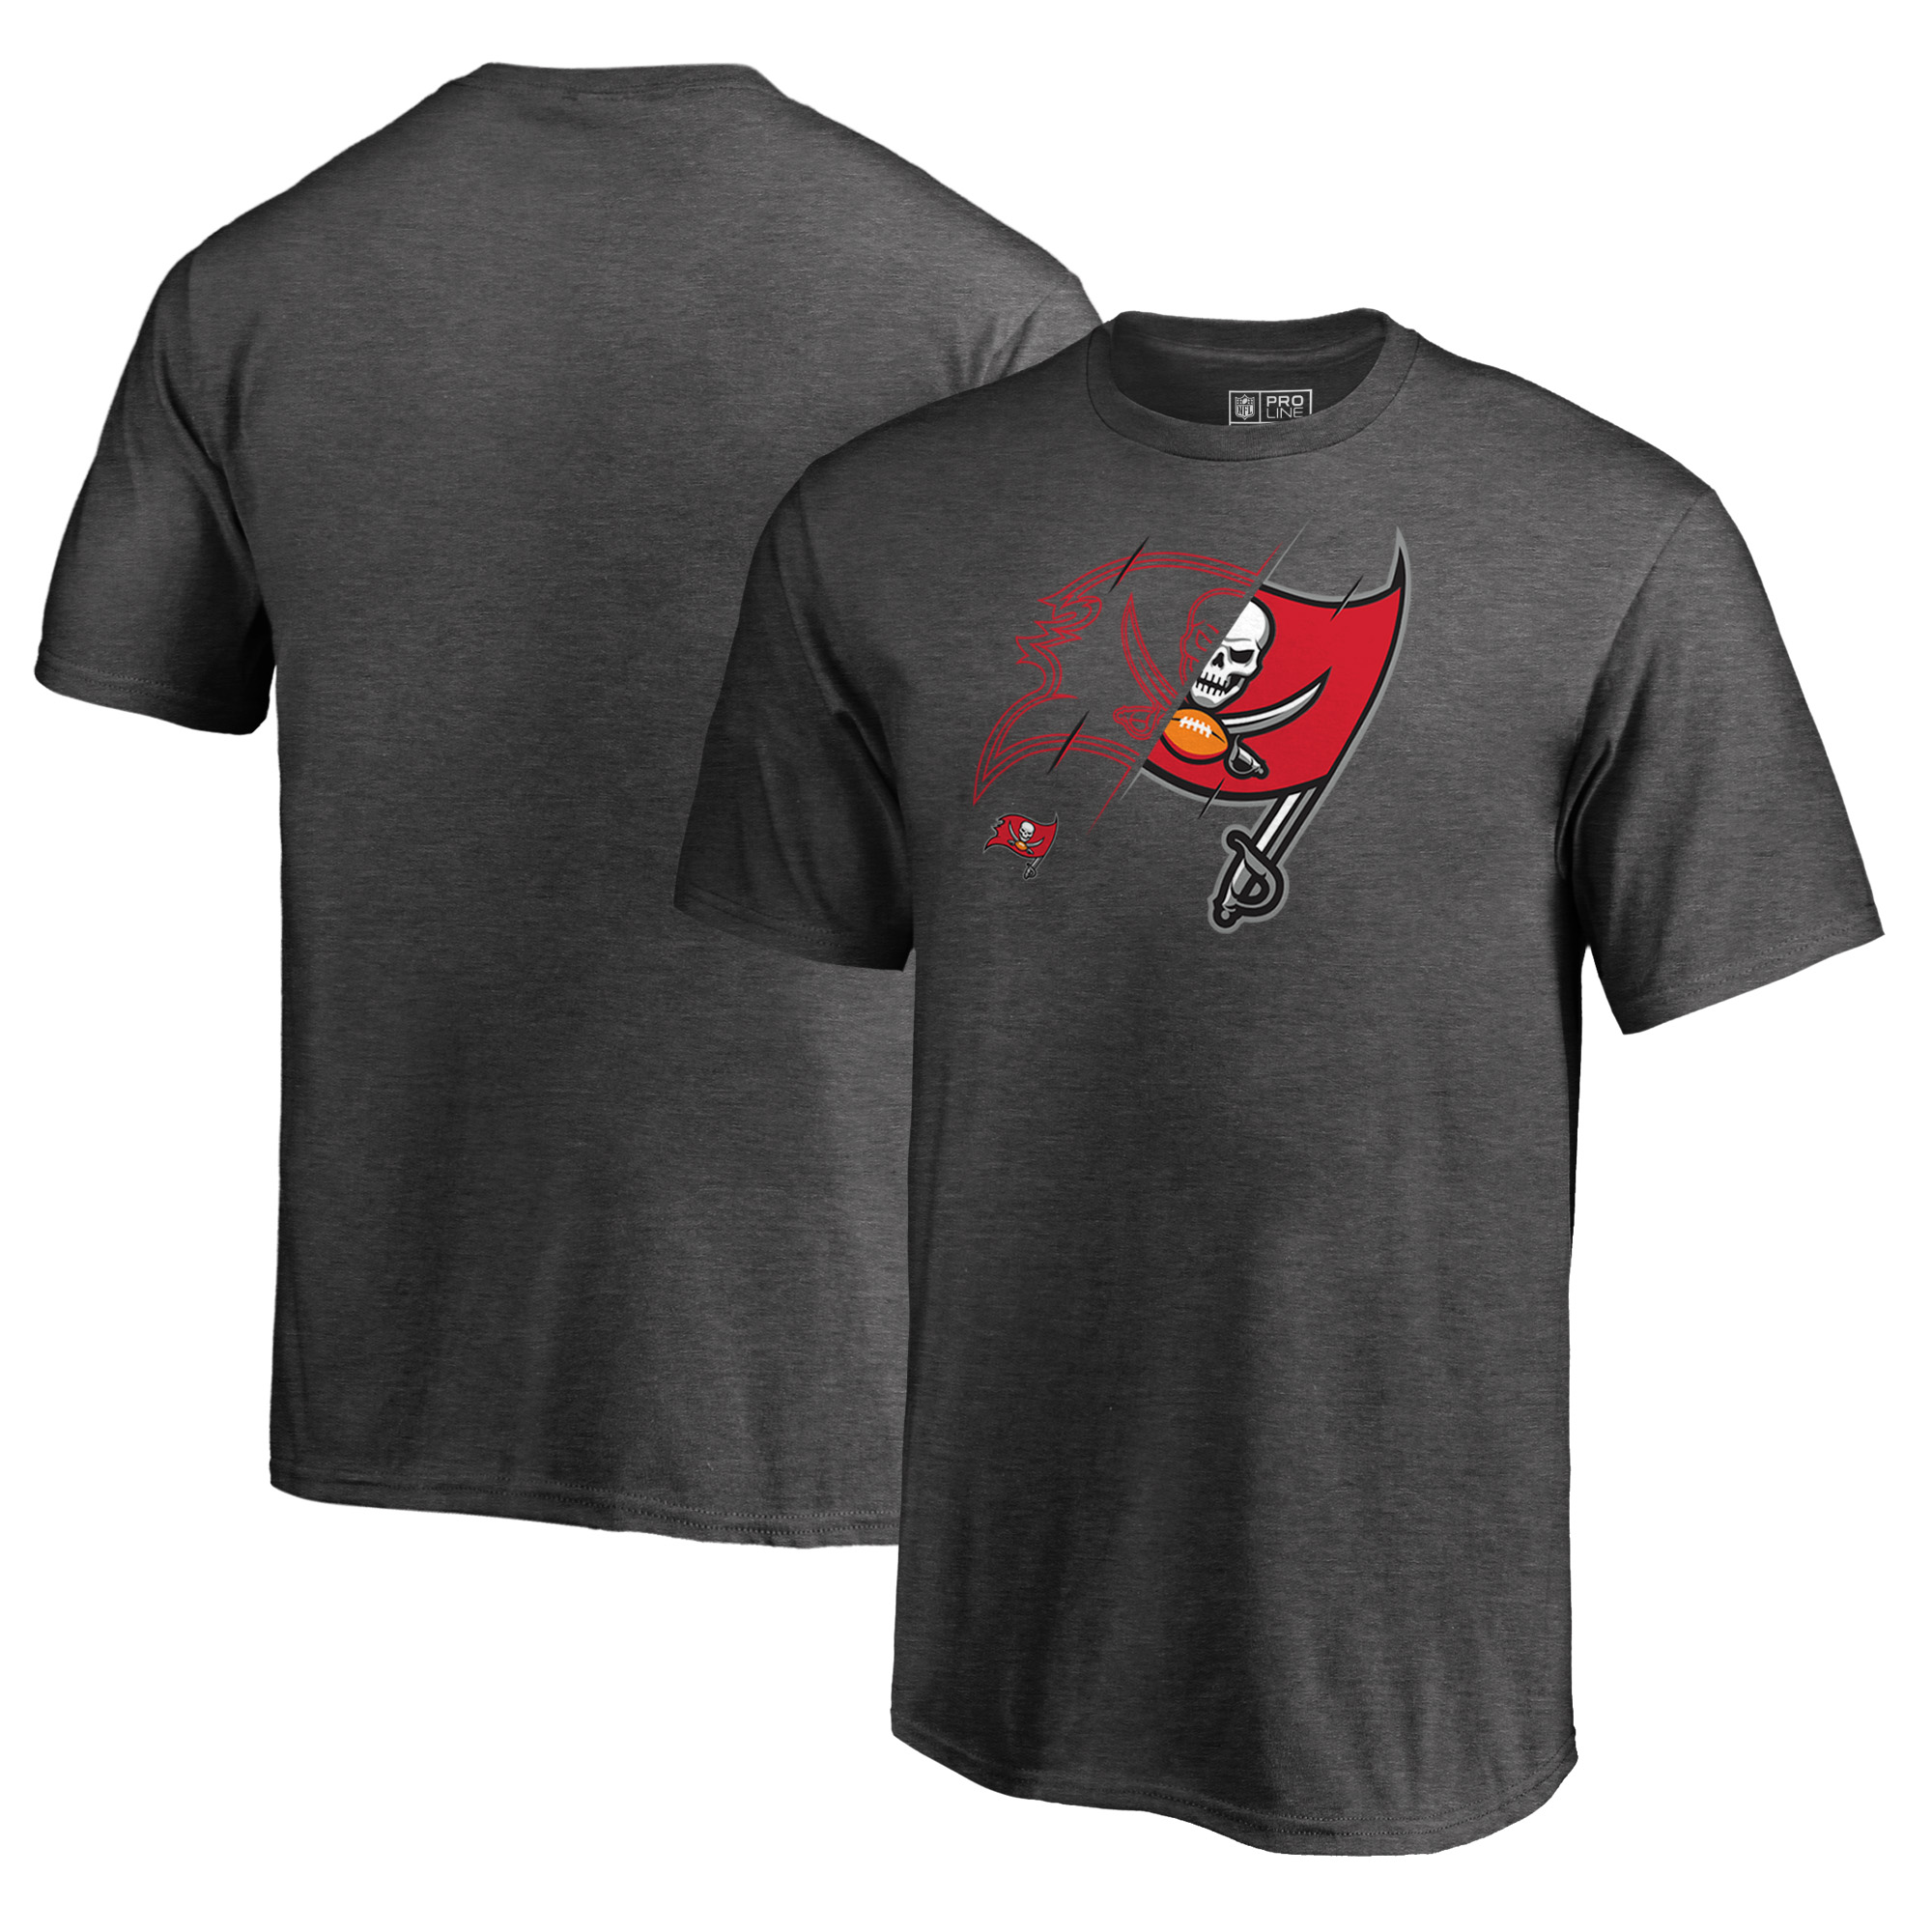 Tampa Bay Buccaneers NFL Pro Line by Fanatics Branded Youth X-Ray T-Shirt - Heathered Gray